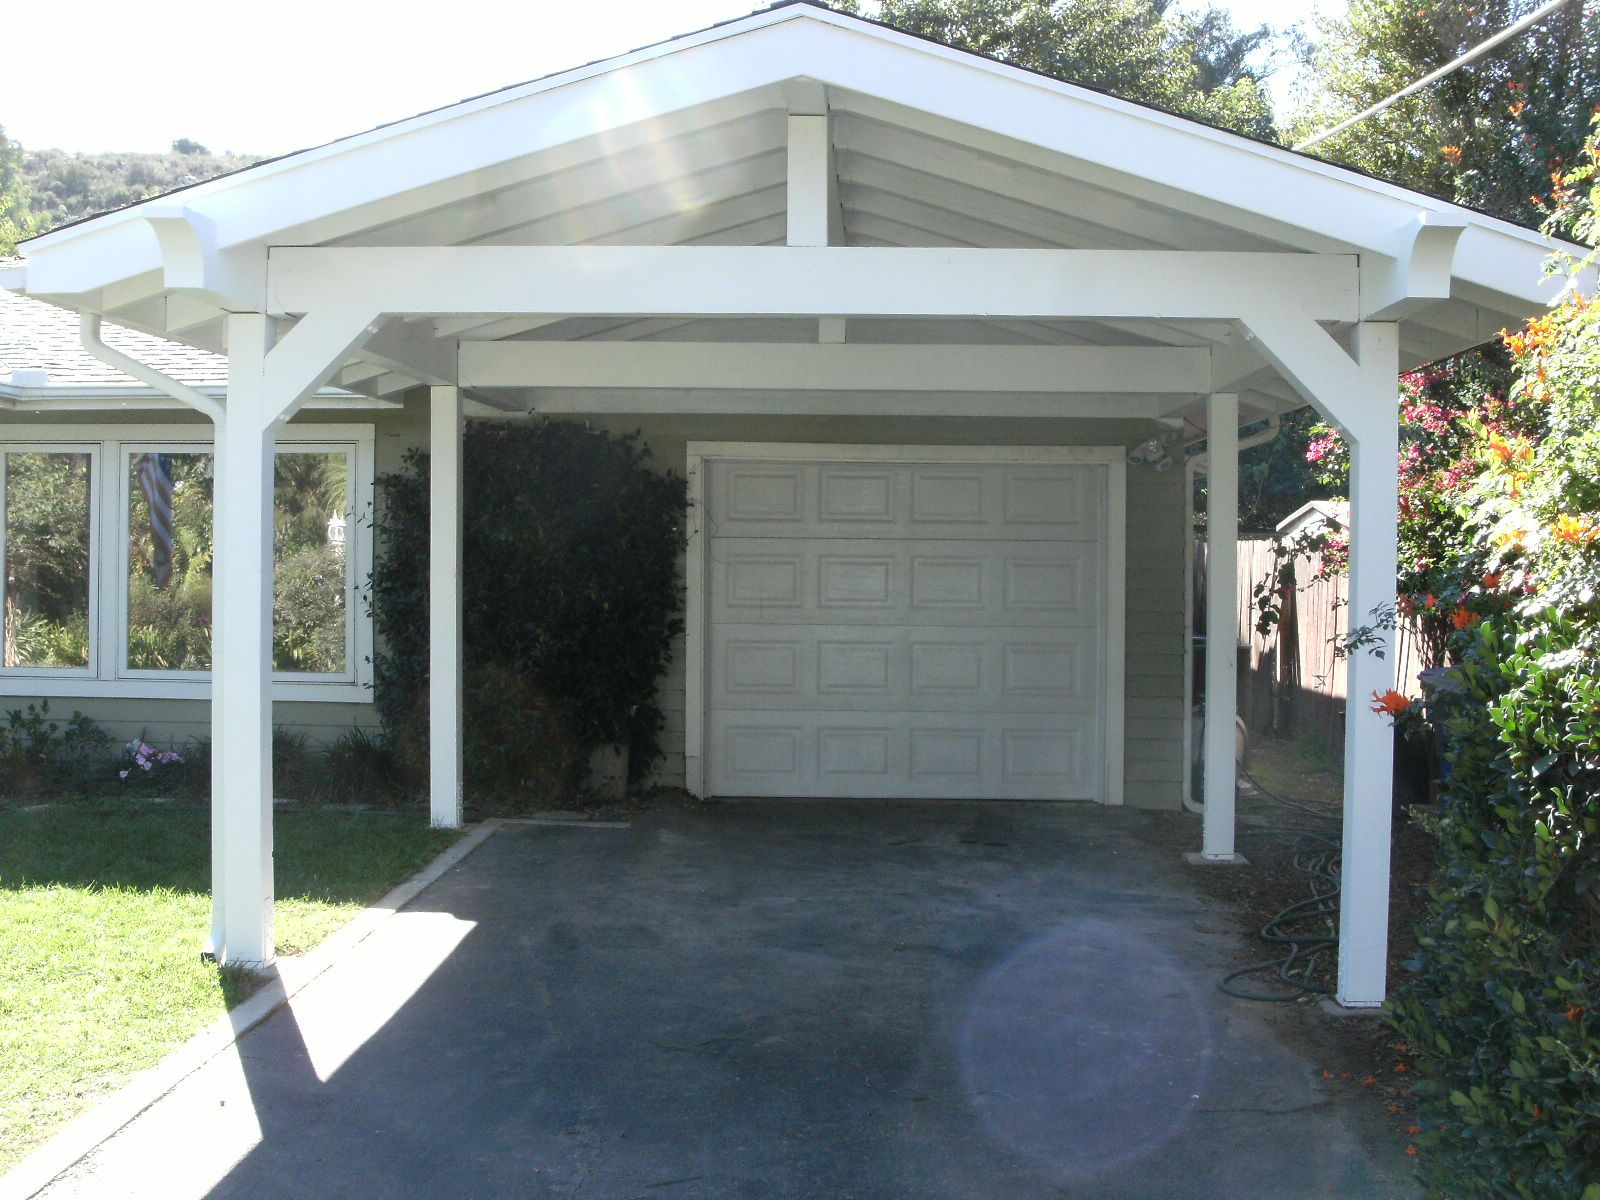 Carport designs garages carports porches decks custom for Carport garages